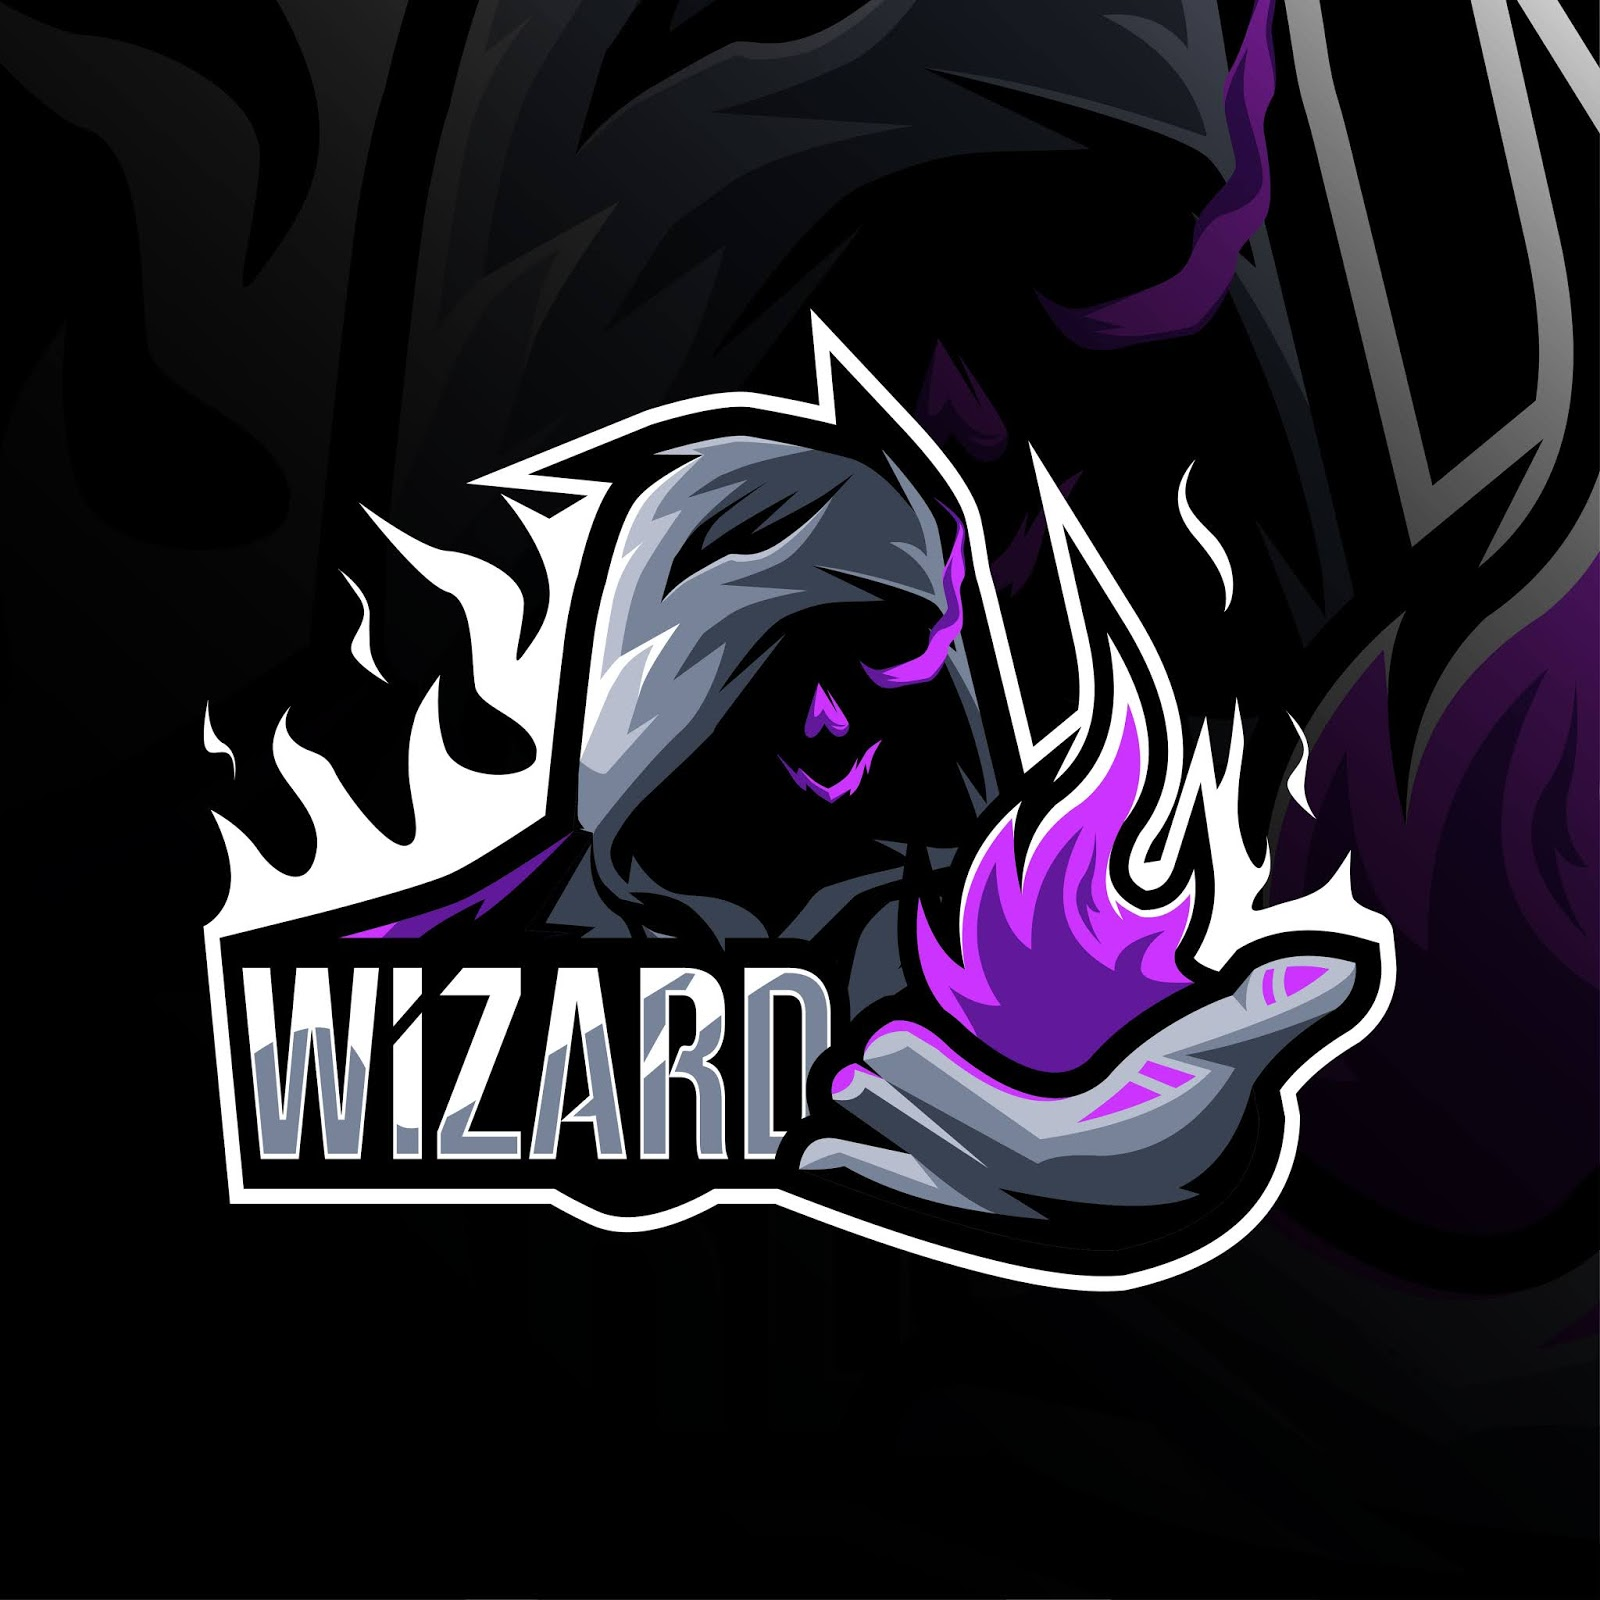 Wizard Mascot Logo Template Design Free Download Vector CDR, AI, EPS and PNG Formats